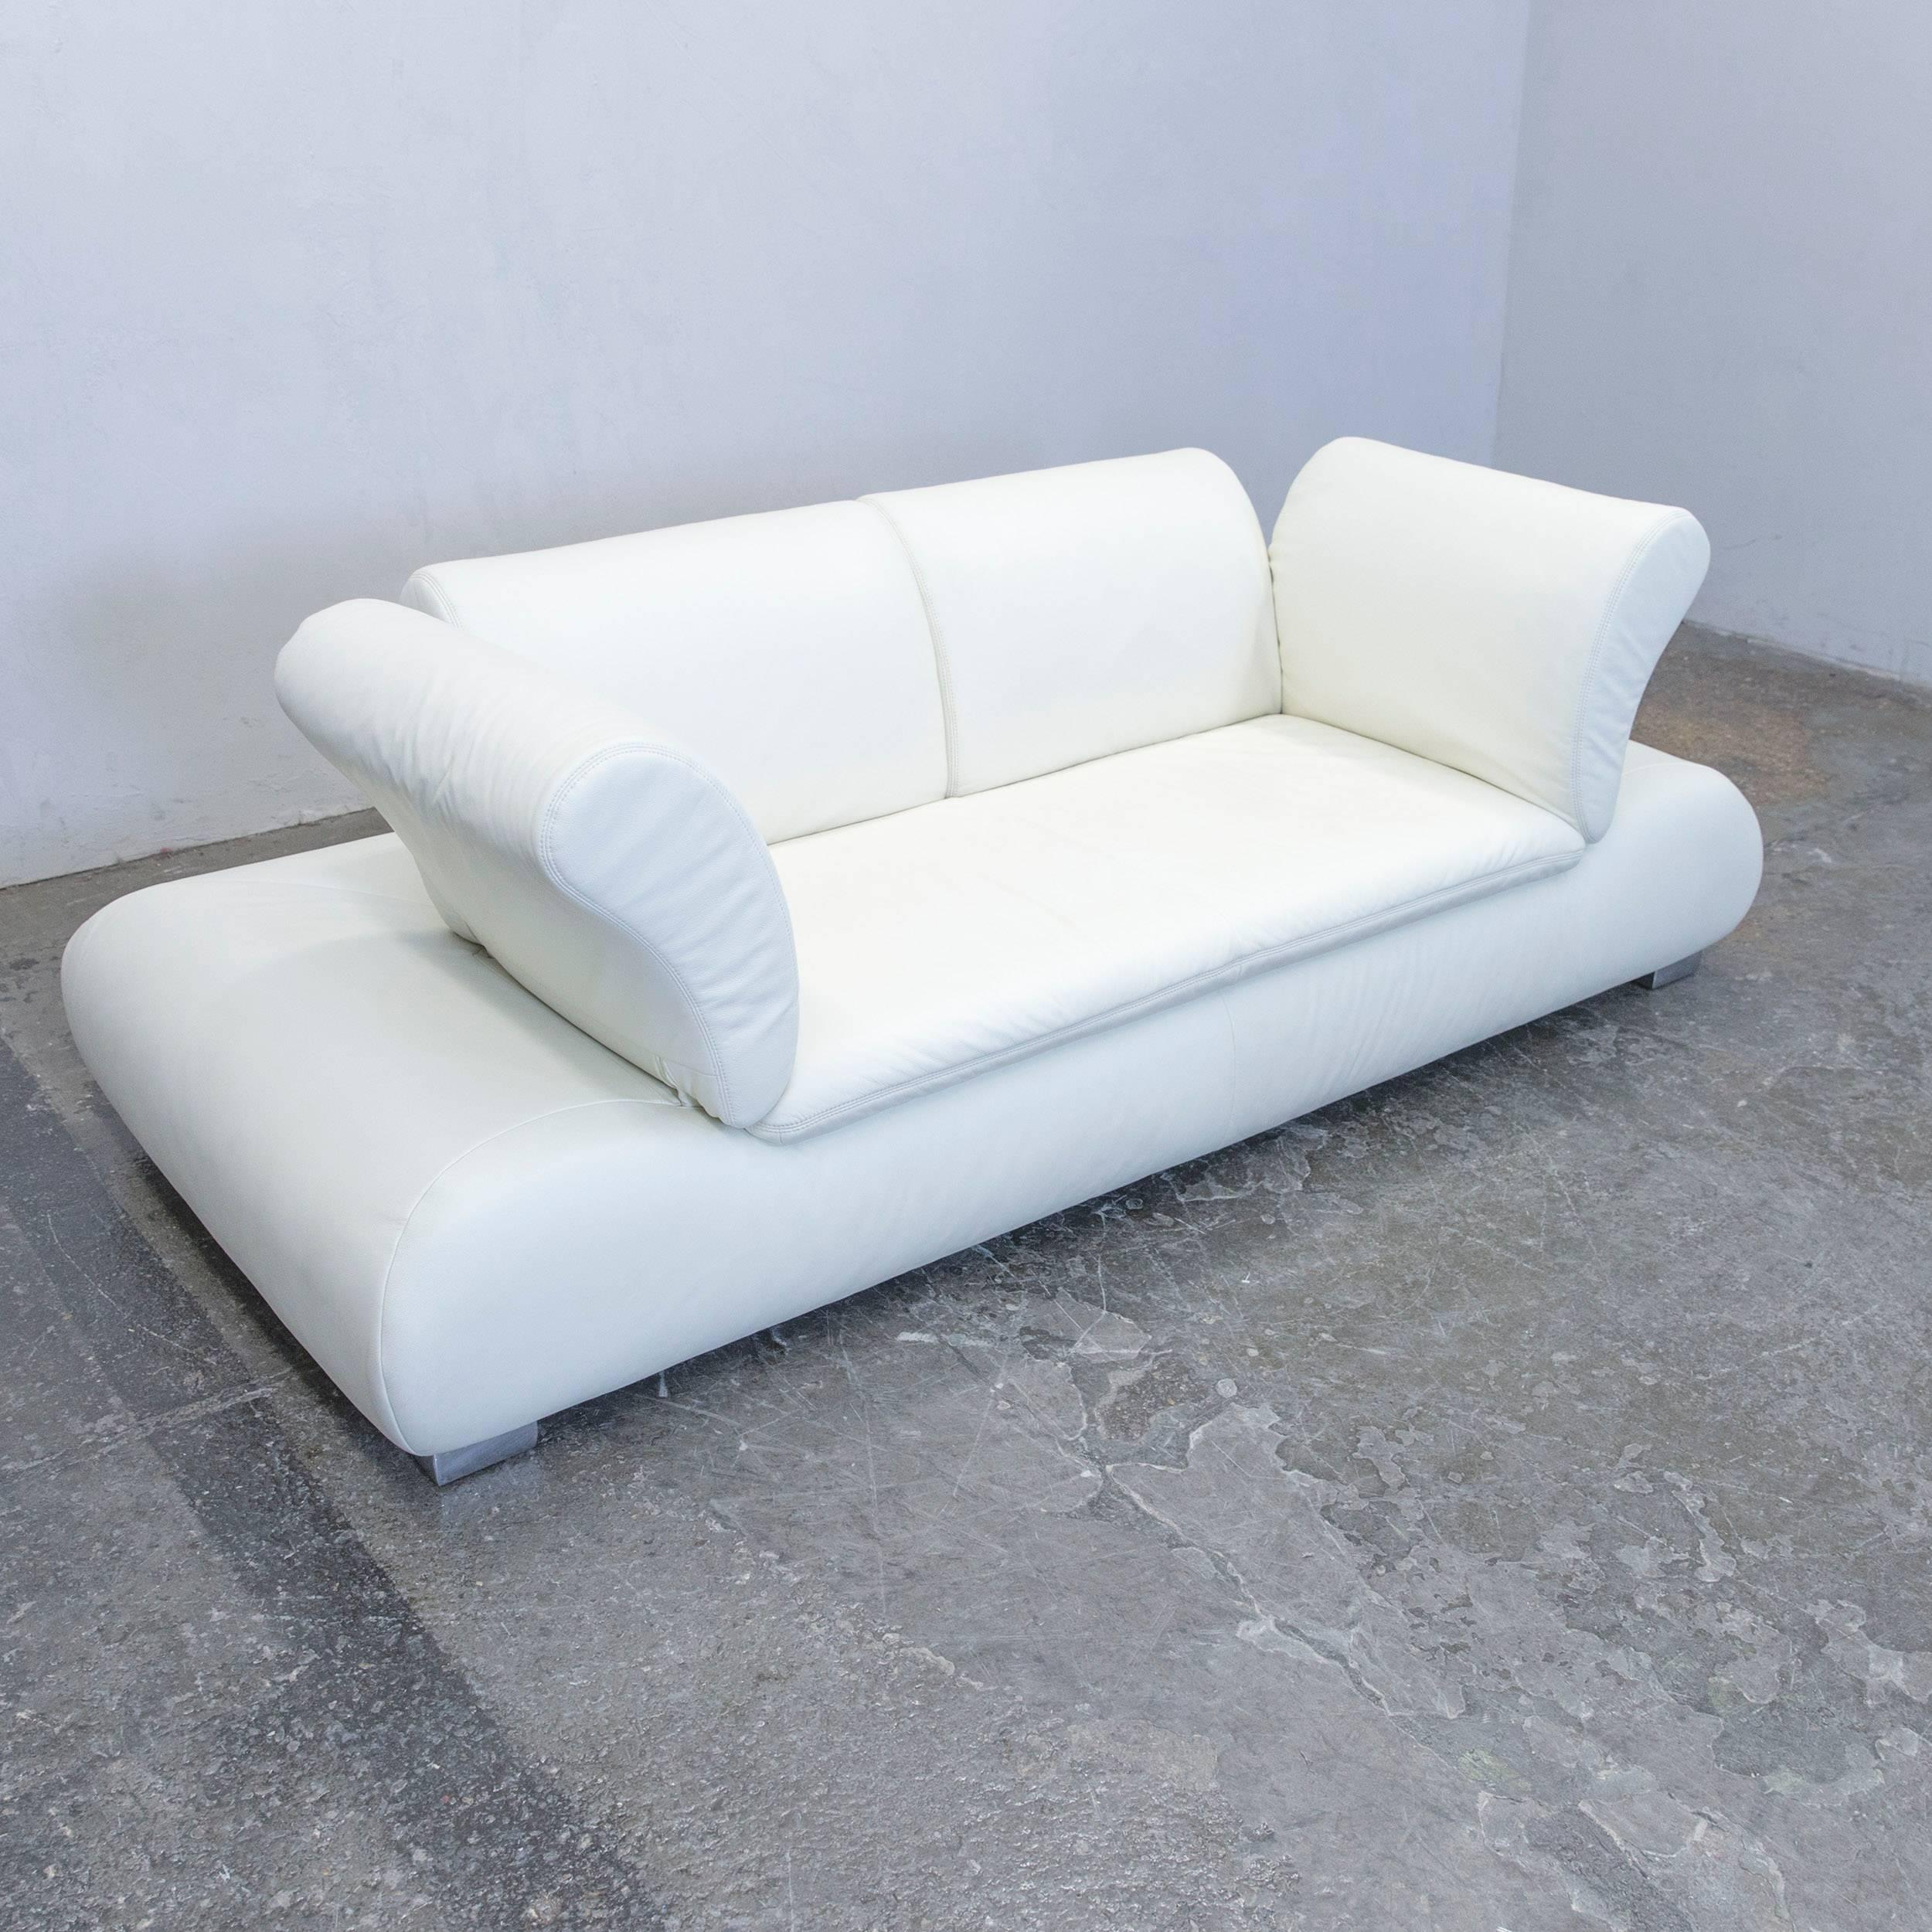 German Koinor Diva Designer Leather Sofa White Function Two Seat Modern For  Sale